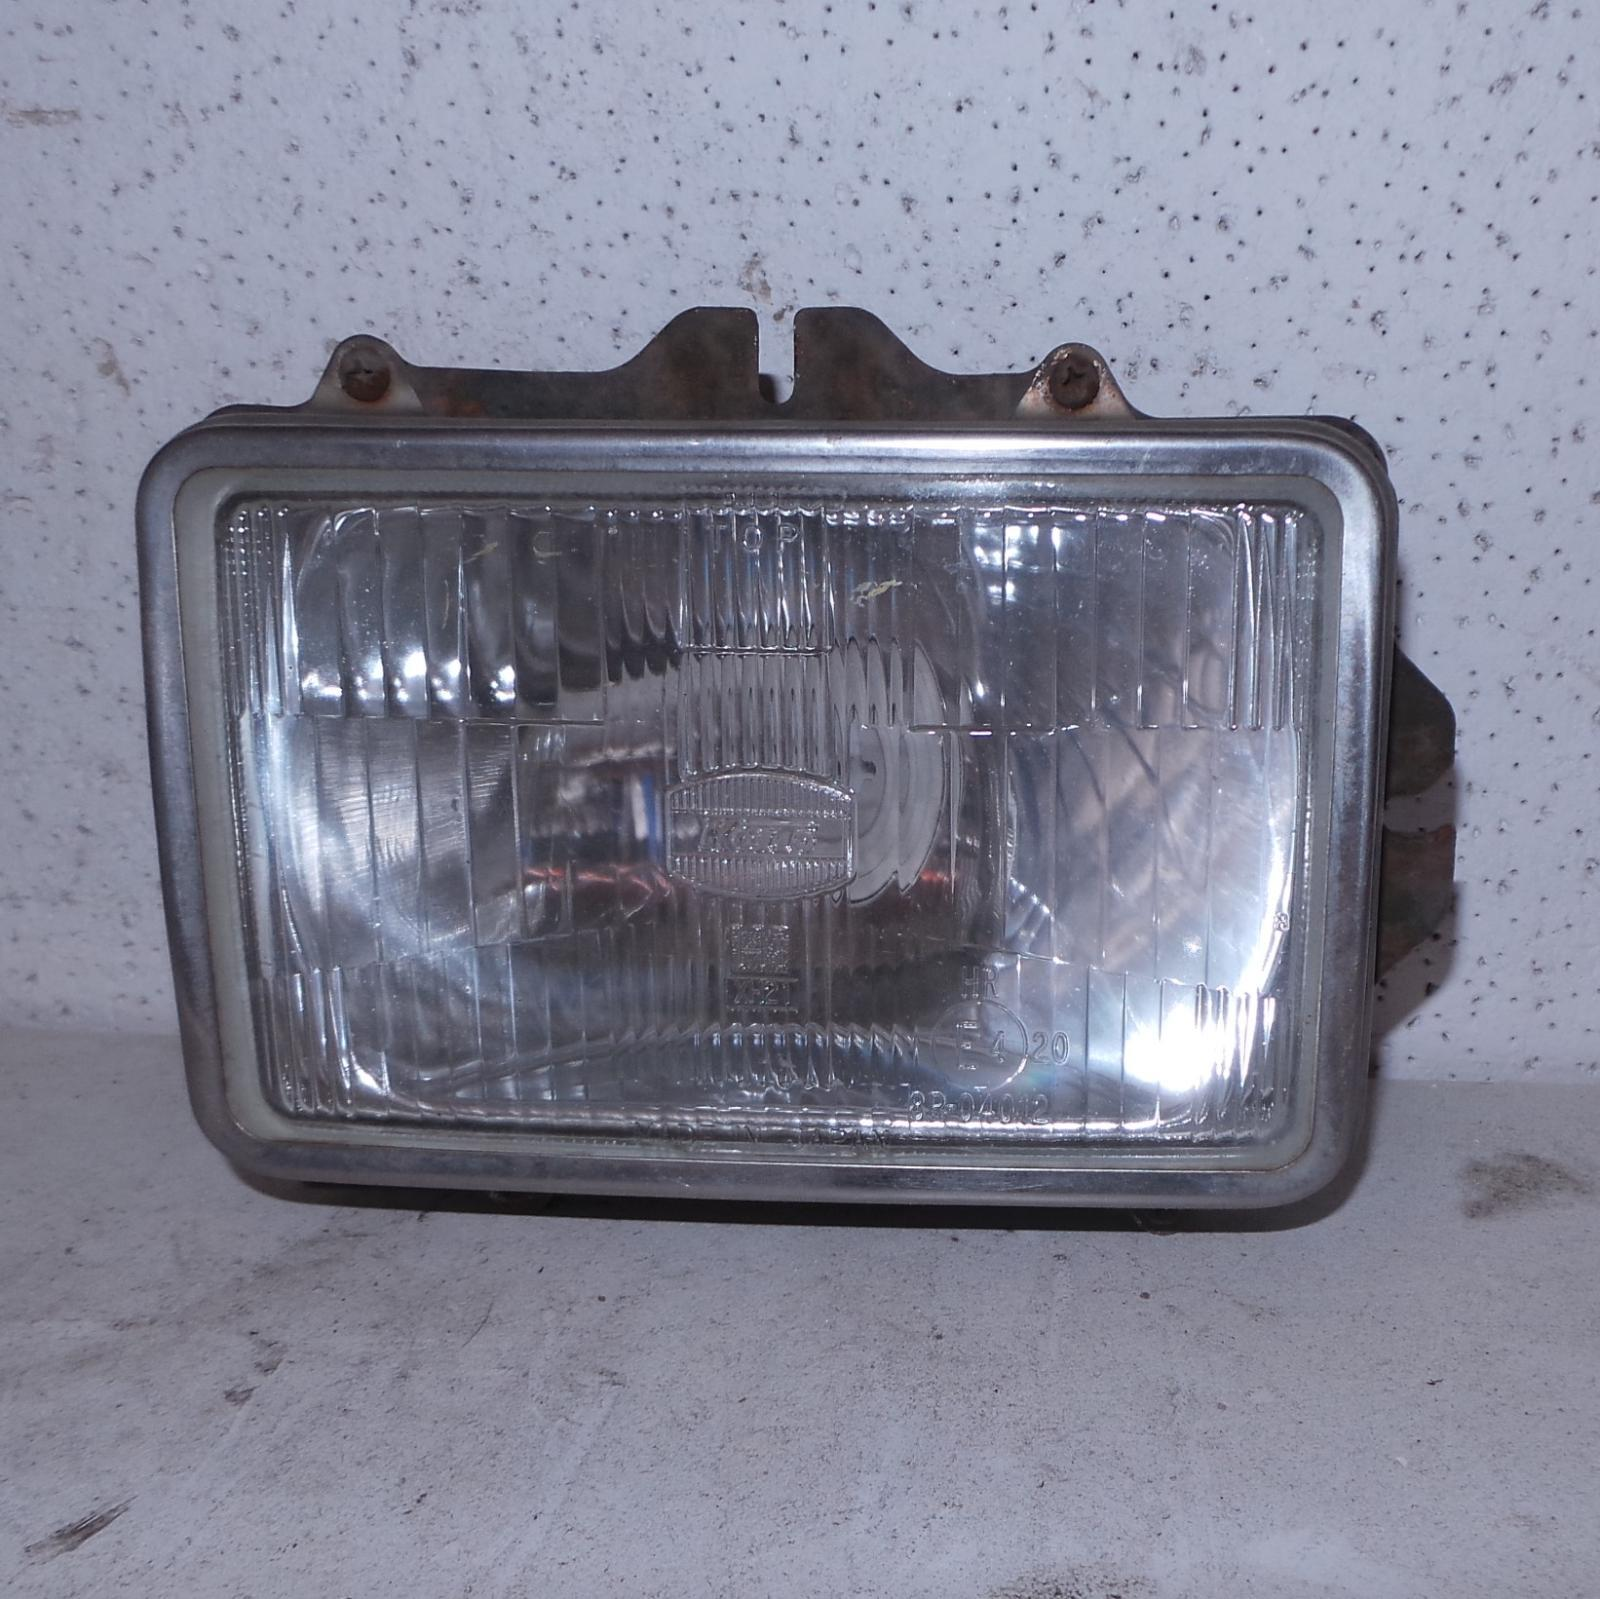 TOYOTA LANDCRUISER, Right Headlamp, 80 SERIES, GX/GXL, TWIN SQUARE, 05/90-03/98